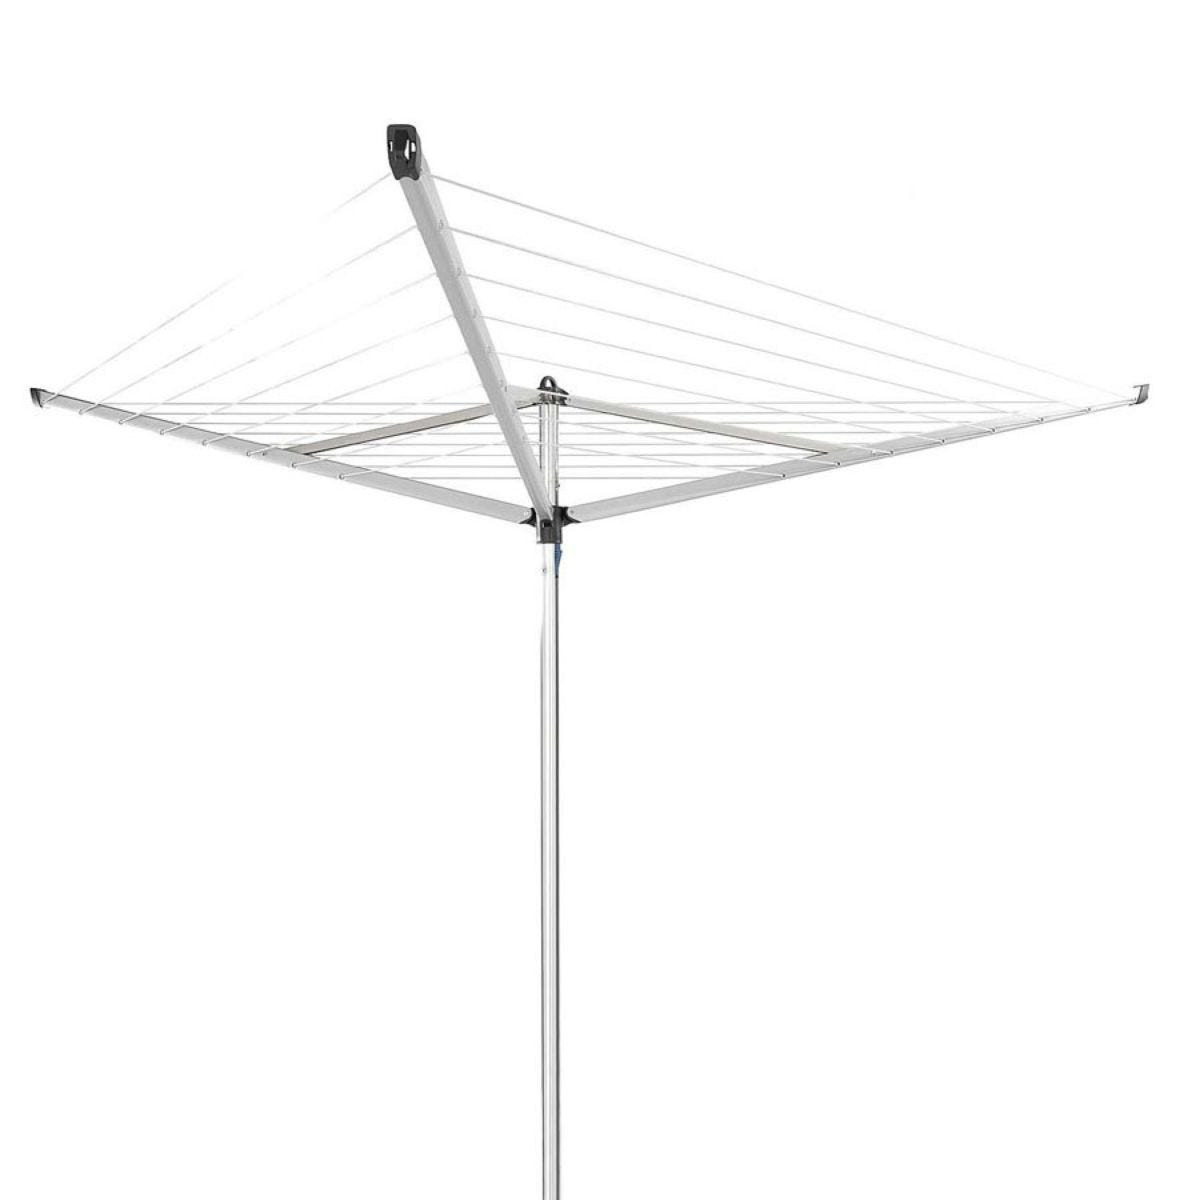 Brabantia Compact 30m 3-Arm Rotary Airer